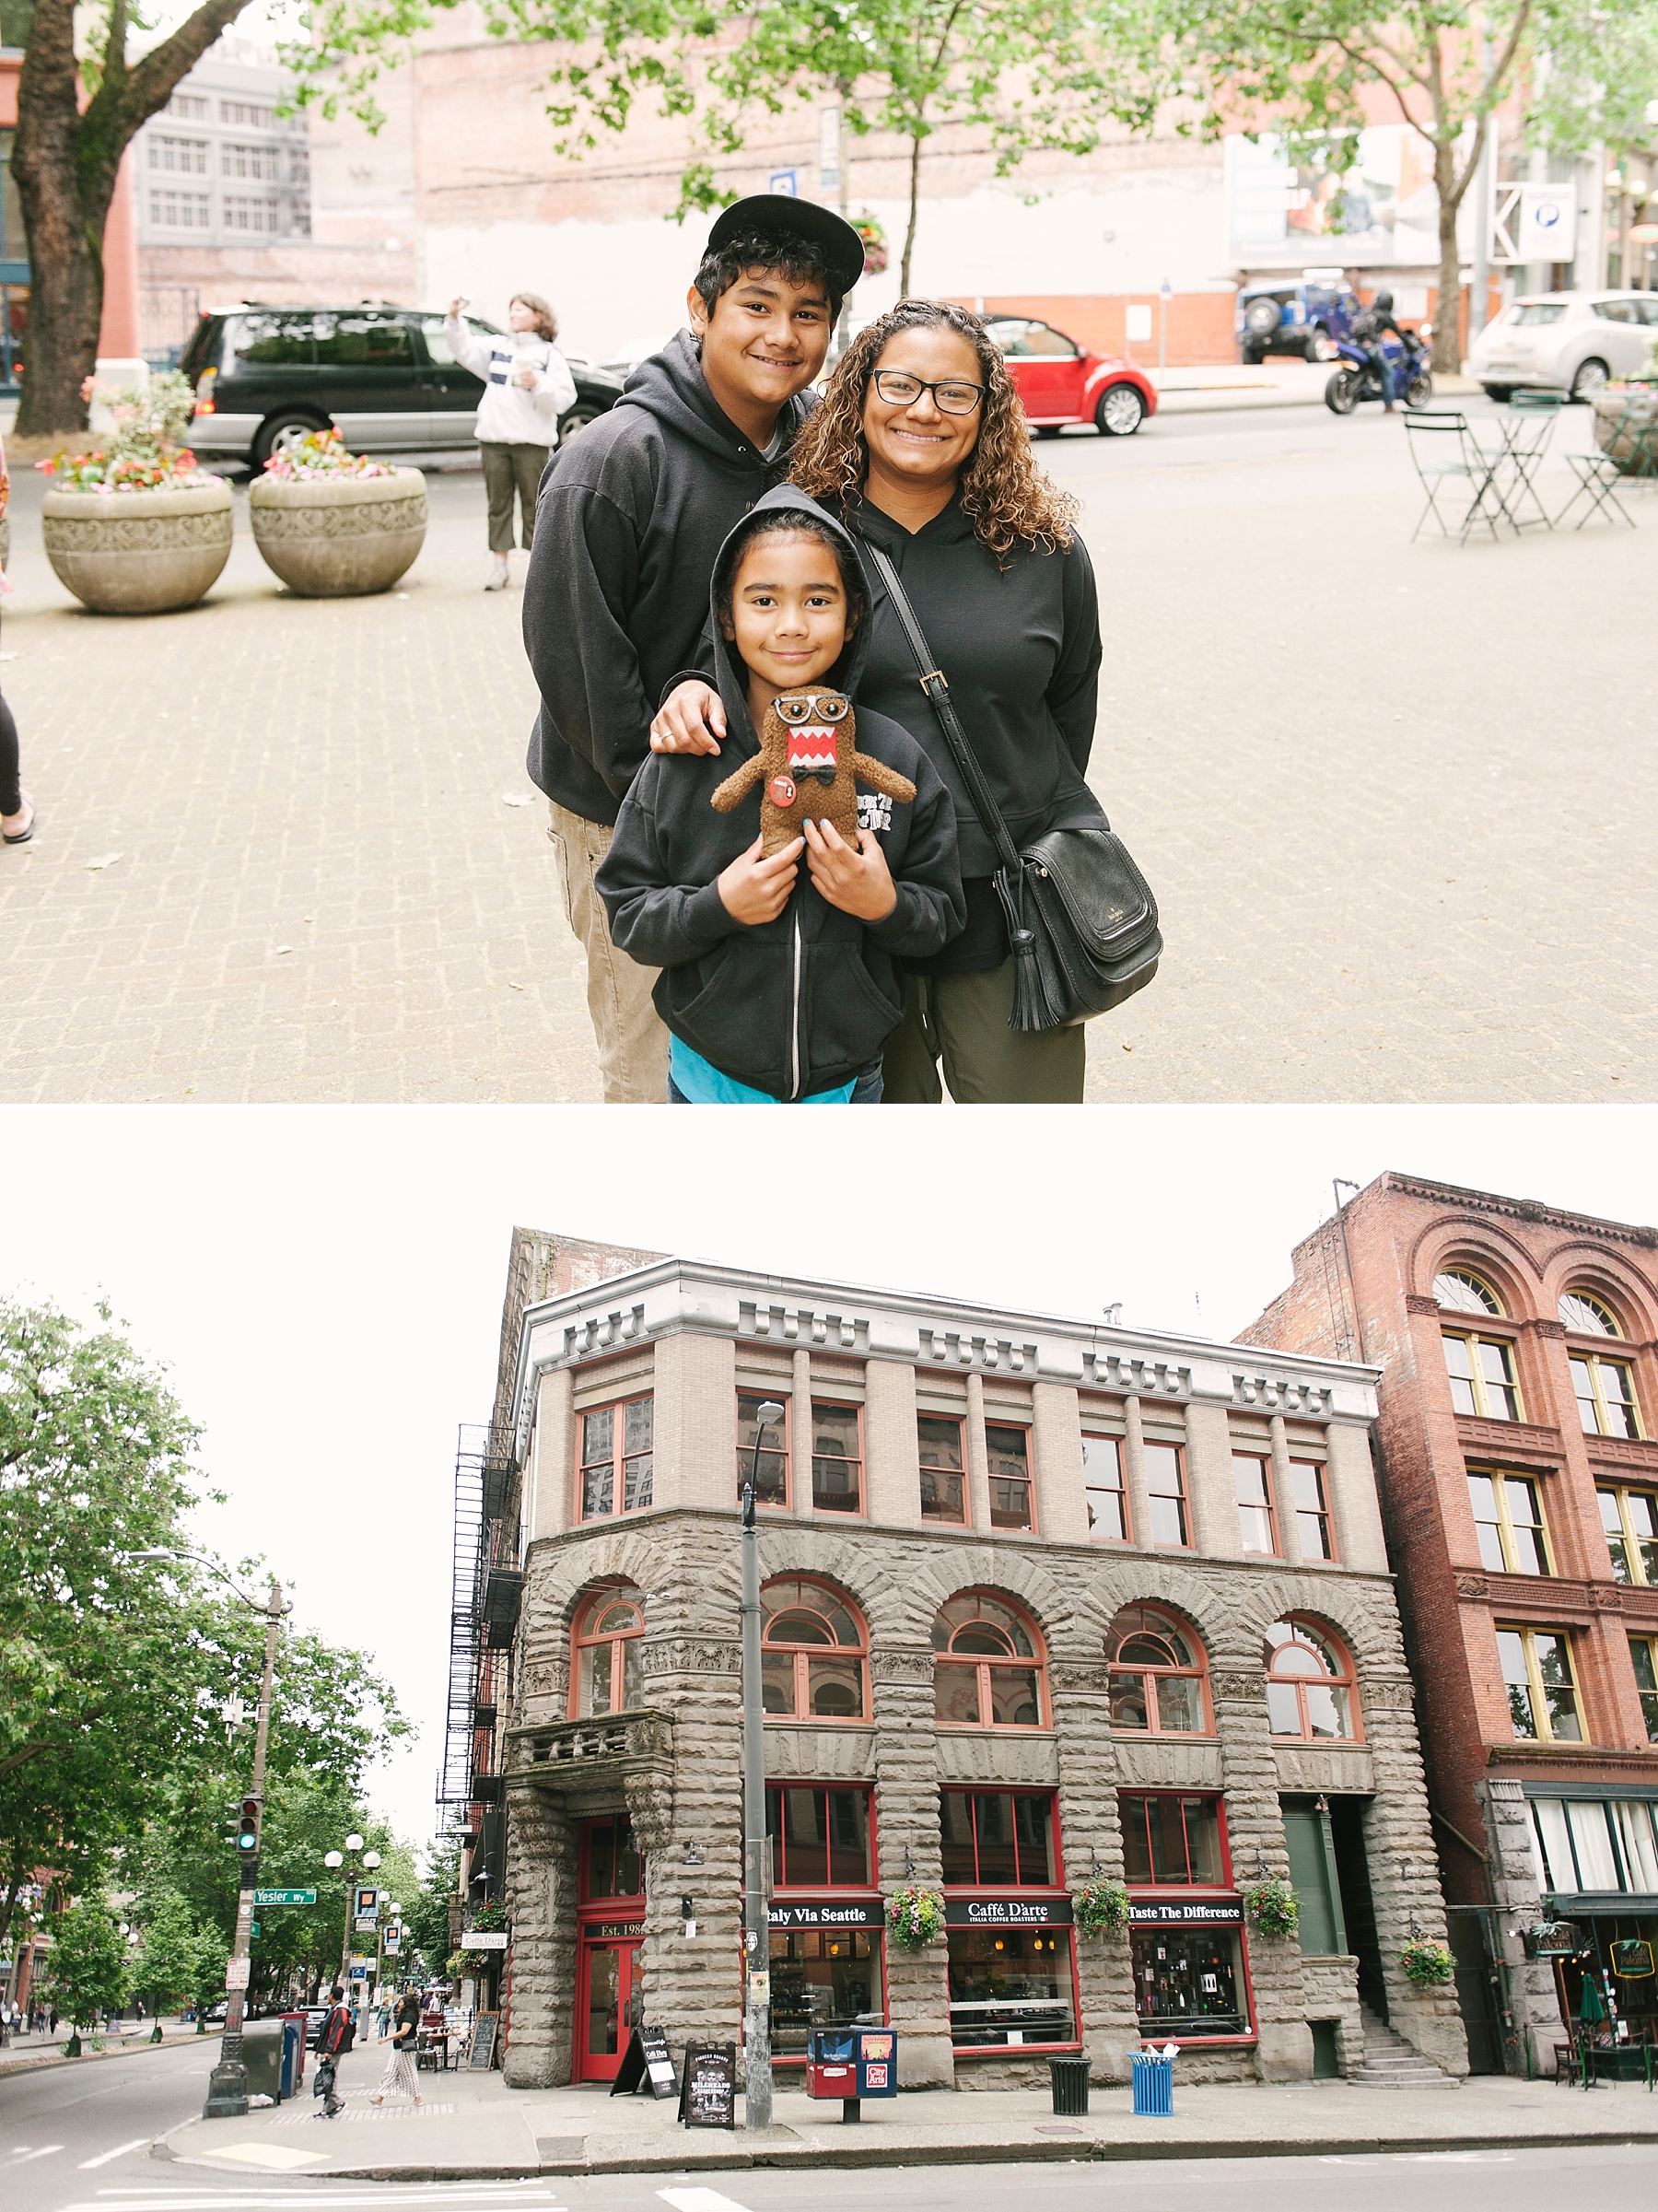 seattle_portland_pnw_oregon_family_vacation_photography-02.jpg